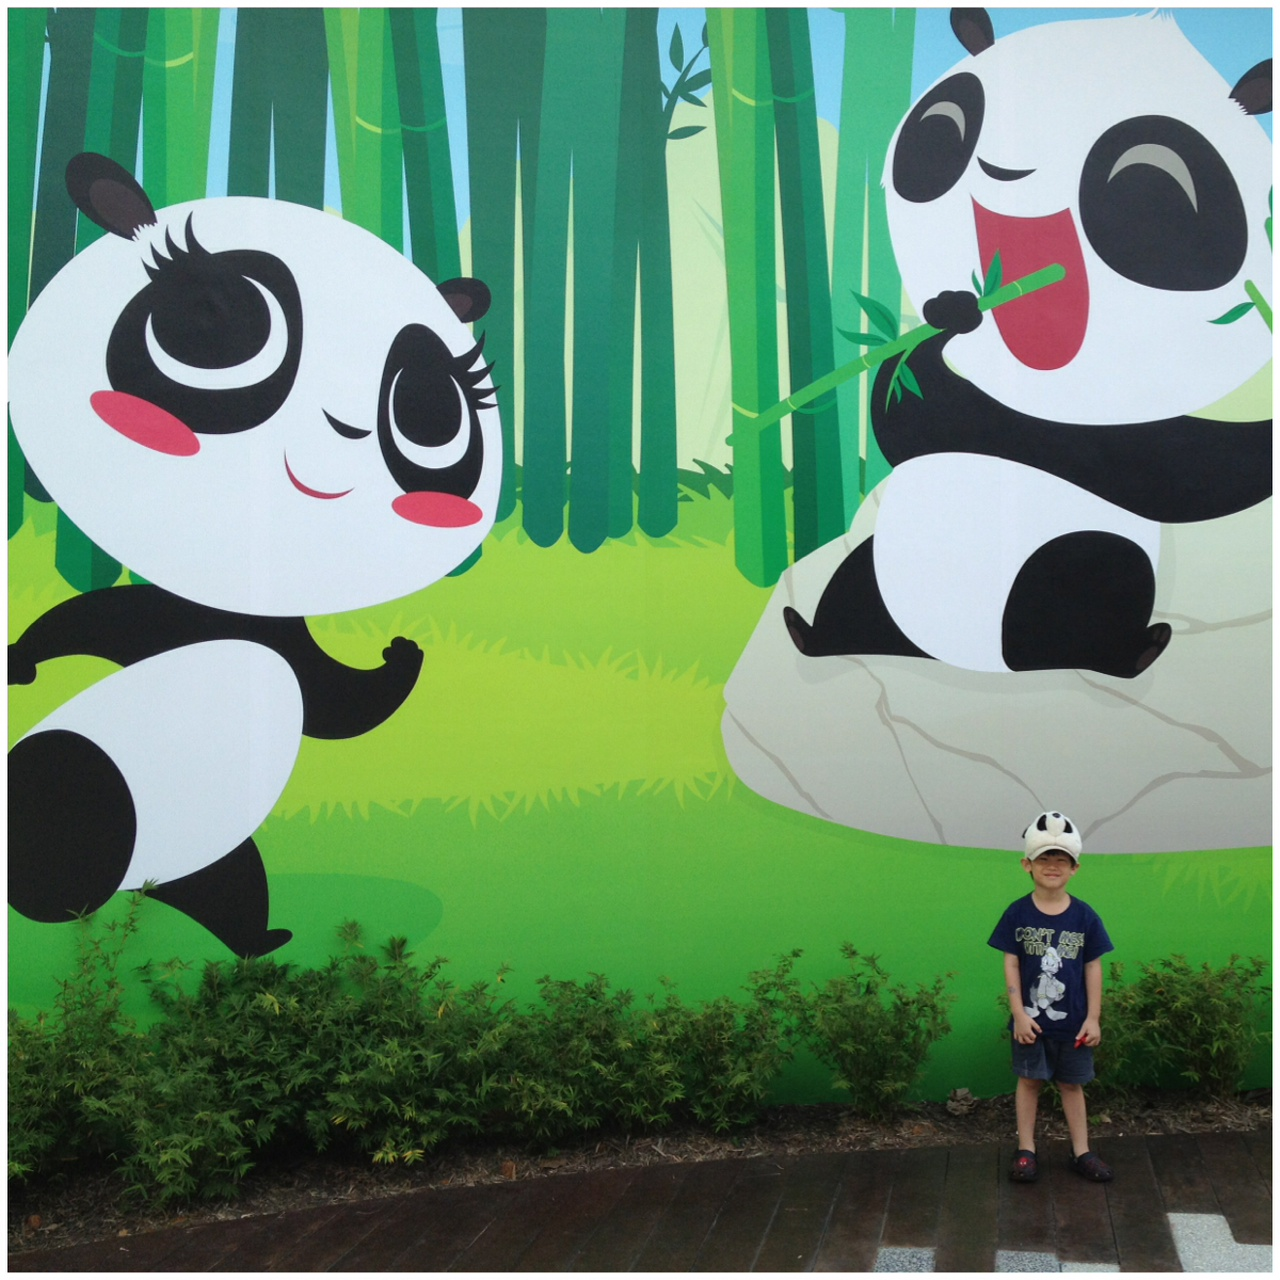 Had a pandastic time